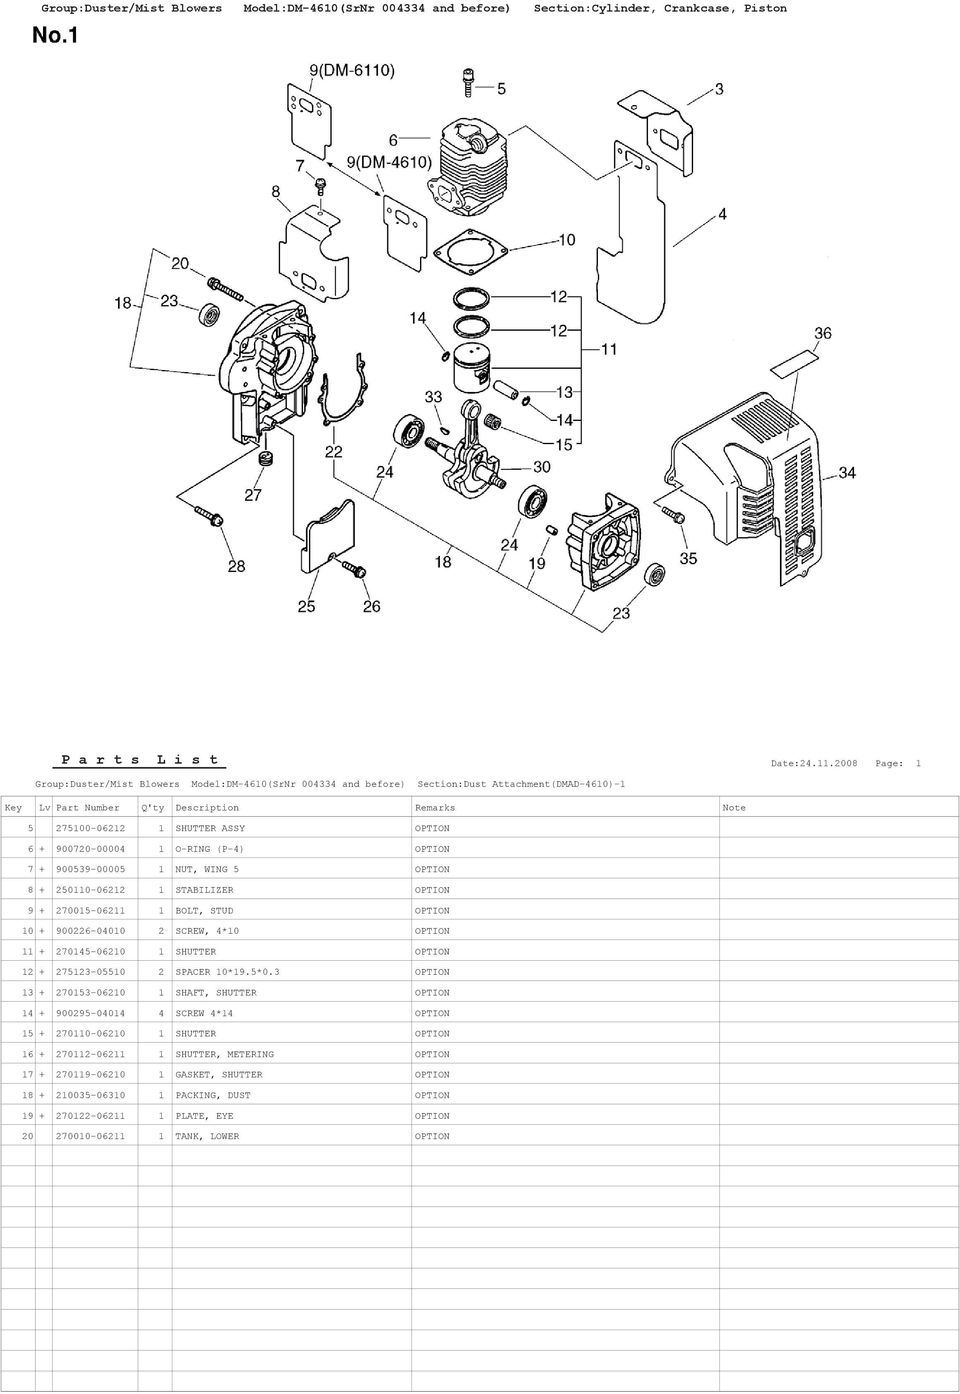 STUD OPTION 10 + 900226-04010 2 SCREW, 4*10 OPTION 11 + 270145-06210 1 SHUTTER OPTION 12 + 275123-05510 2 SPACER 10*19.5*0.